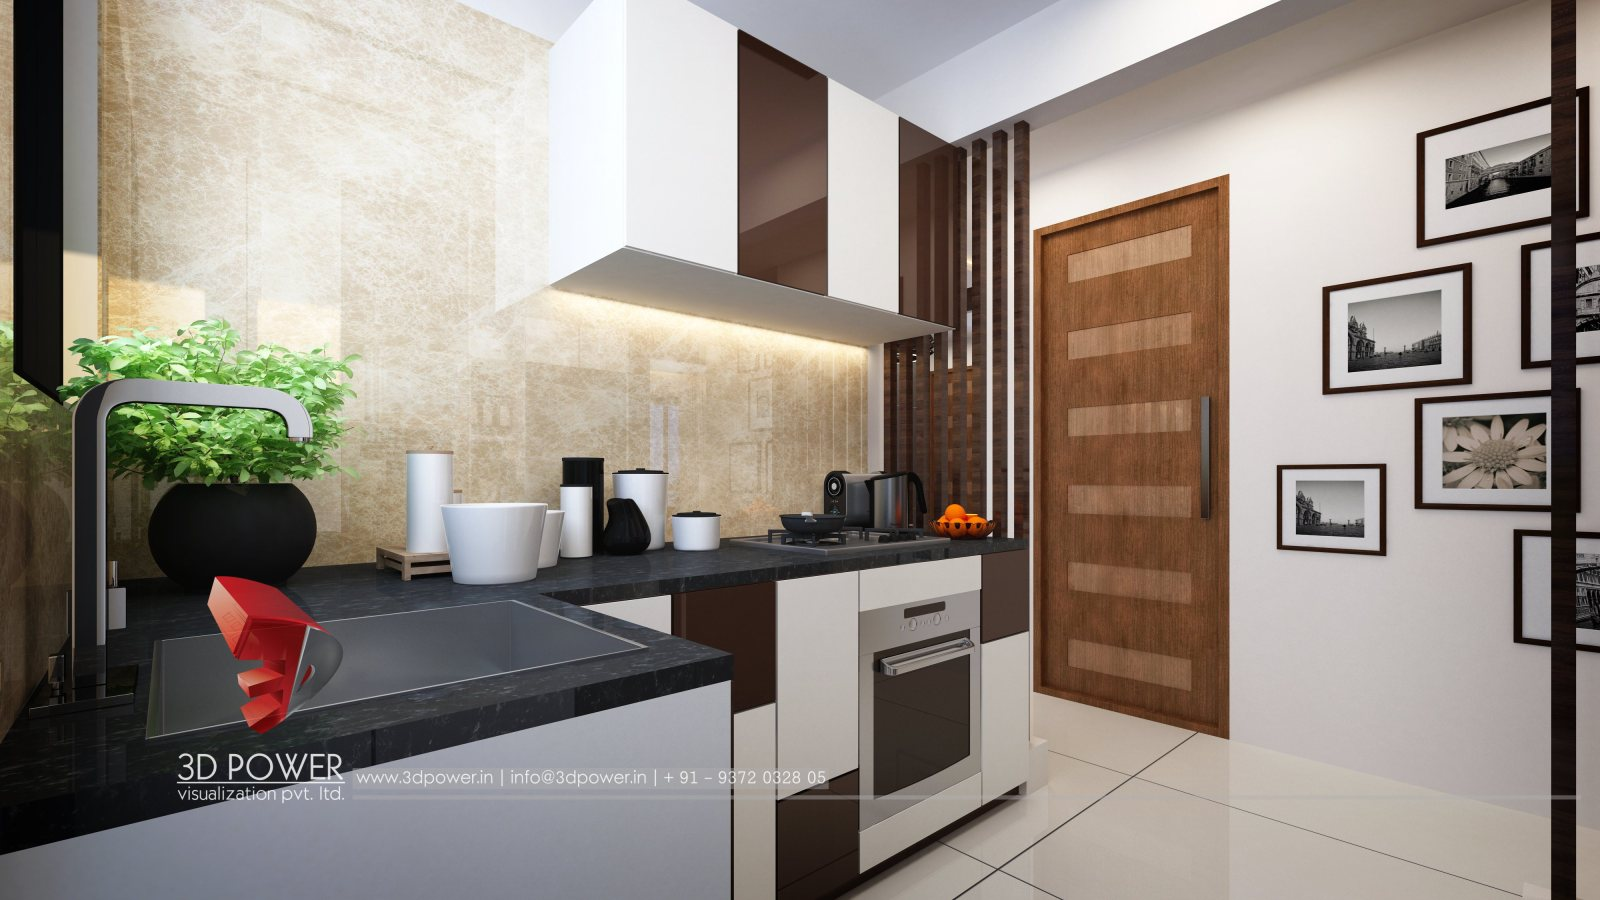 3d-architectural-visualization-virtual-walk-through-beautiful-kitchen-designing-3d-walkthrough